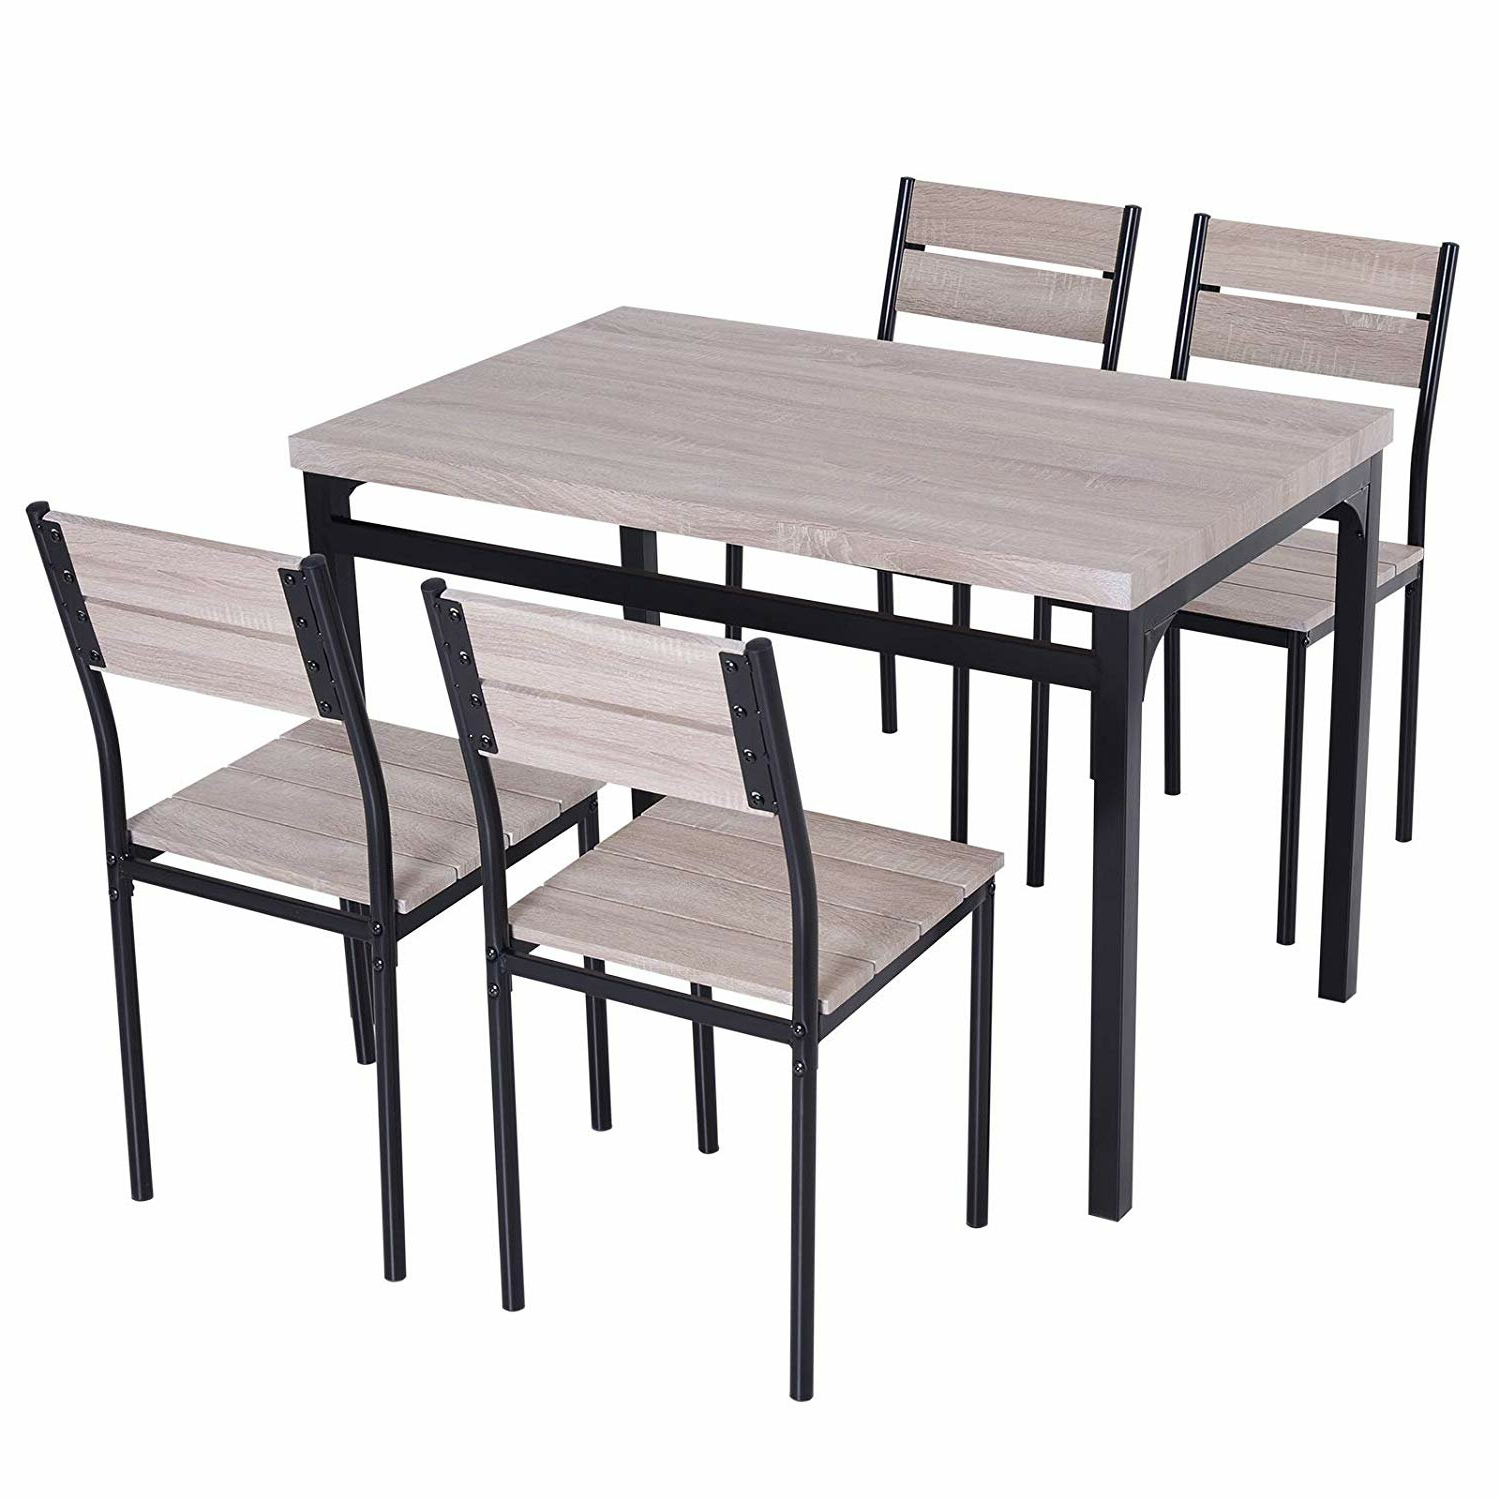 Wayfair With Regard To 2020 Emmeline 5 Piece Breakfast Nook Dining Sets (View 3 of 25)